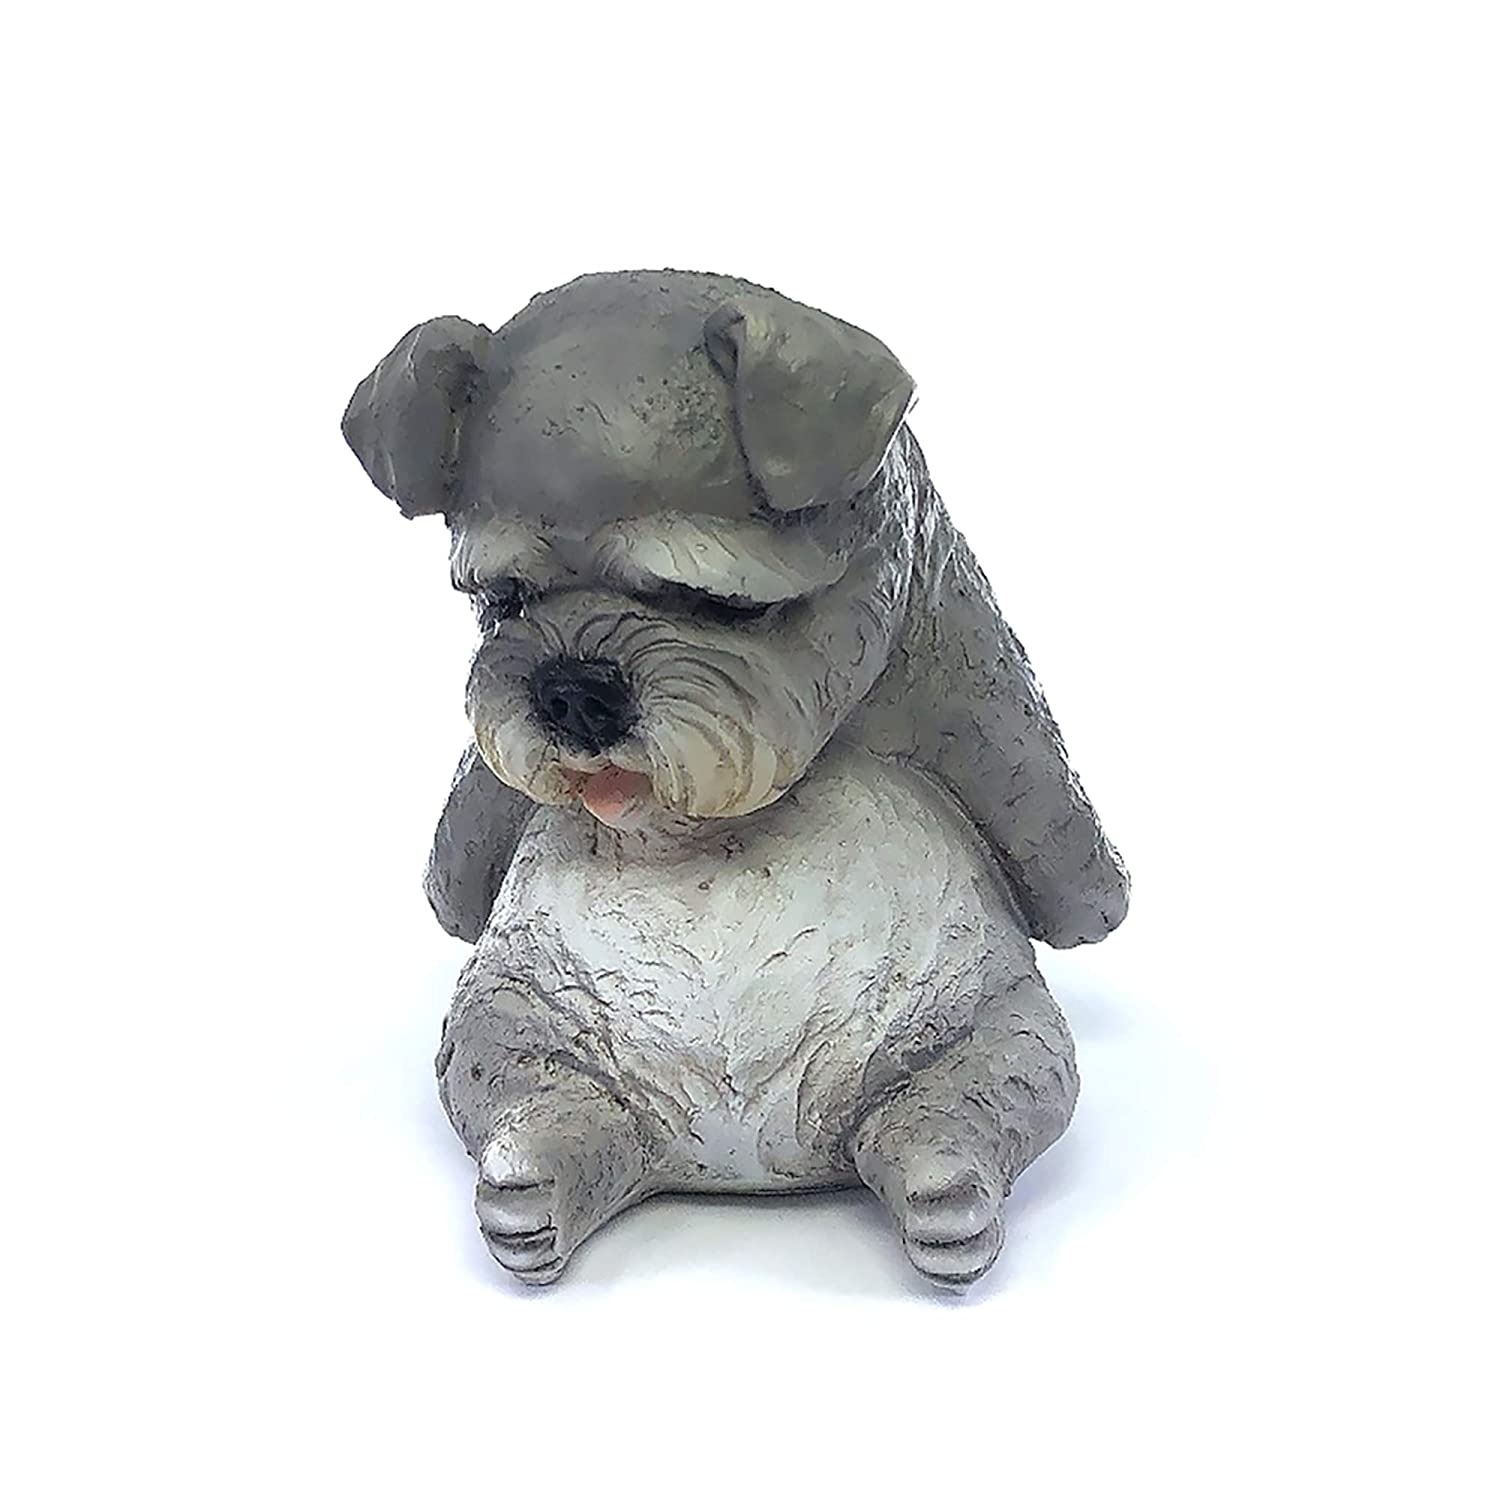 """IFiDEA Sleeping Animal Garden Statue 7"""" Grey Dog Figurine, Ornament Designer Art Decor for Indoor Outdoor Home Office Collection, Cute and Adorable Crafts Decoration, Collectible Figure"""